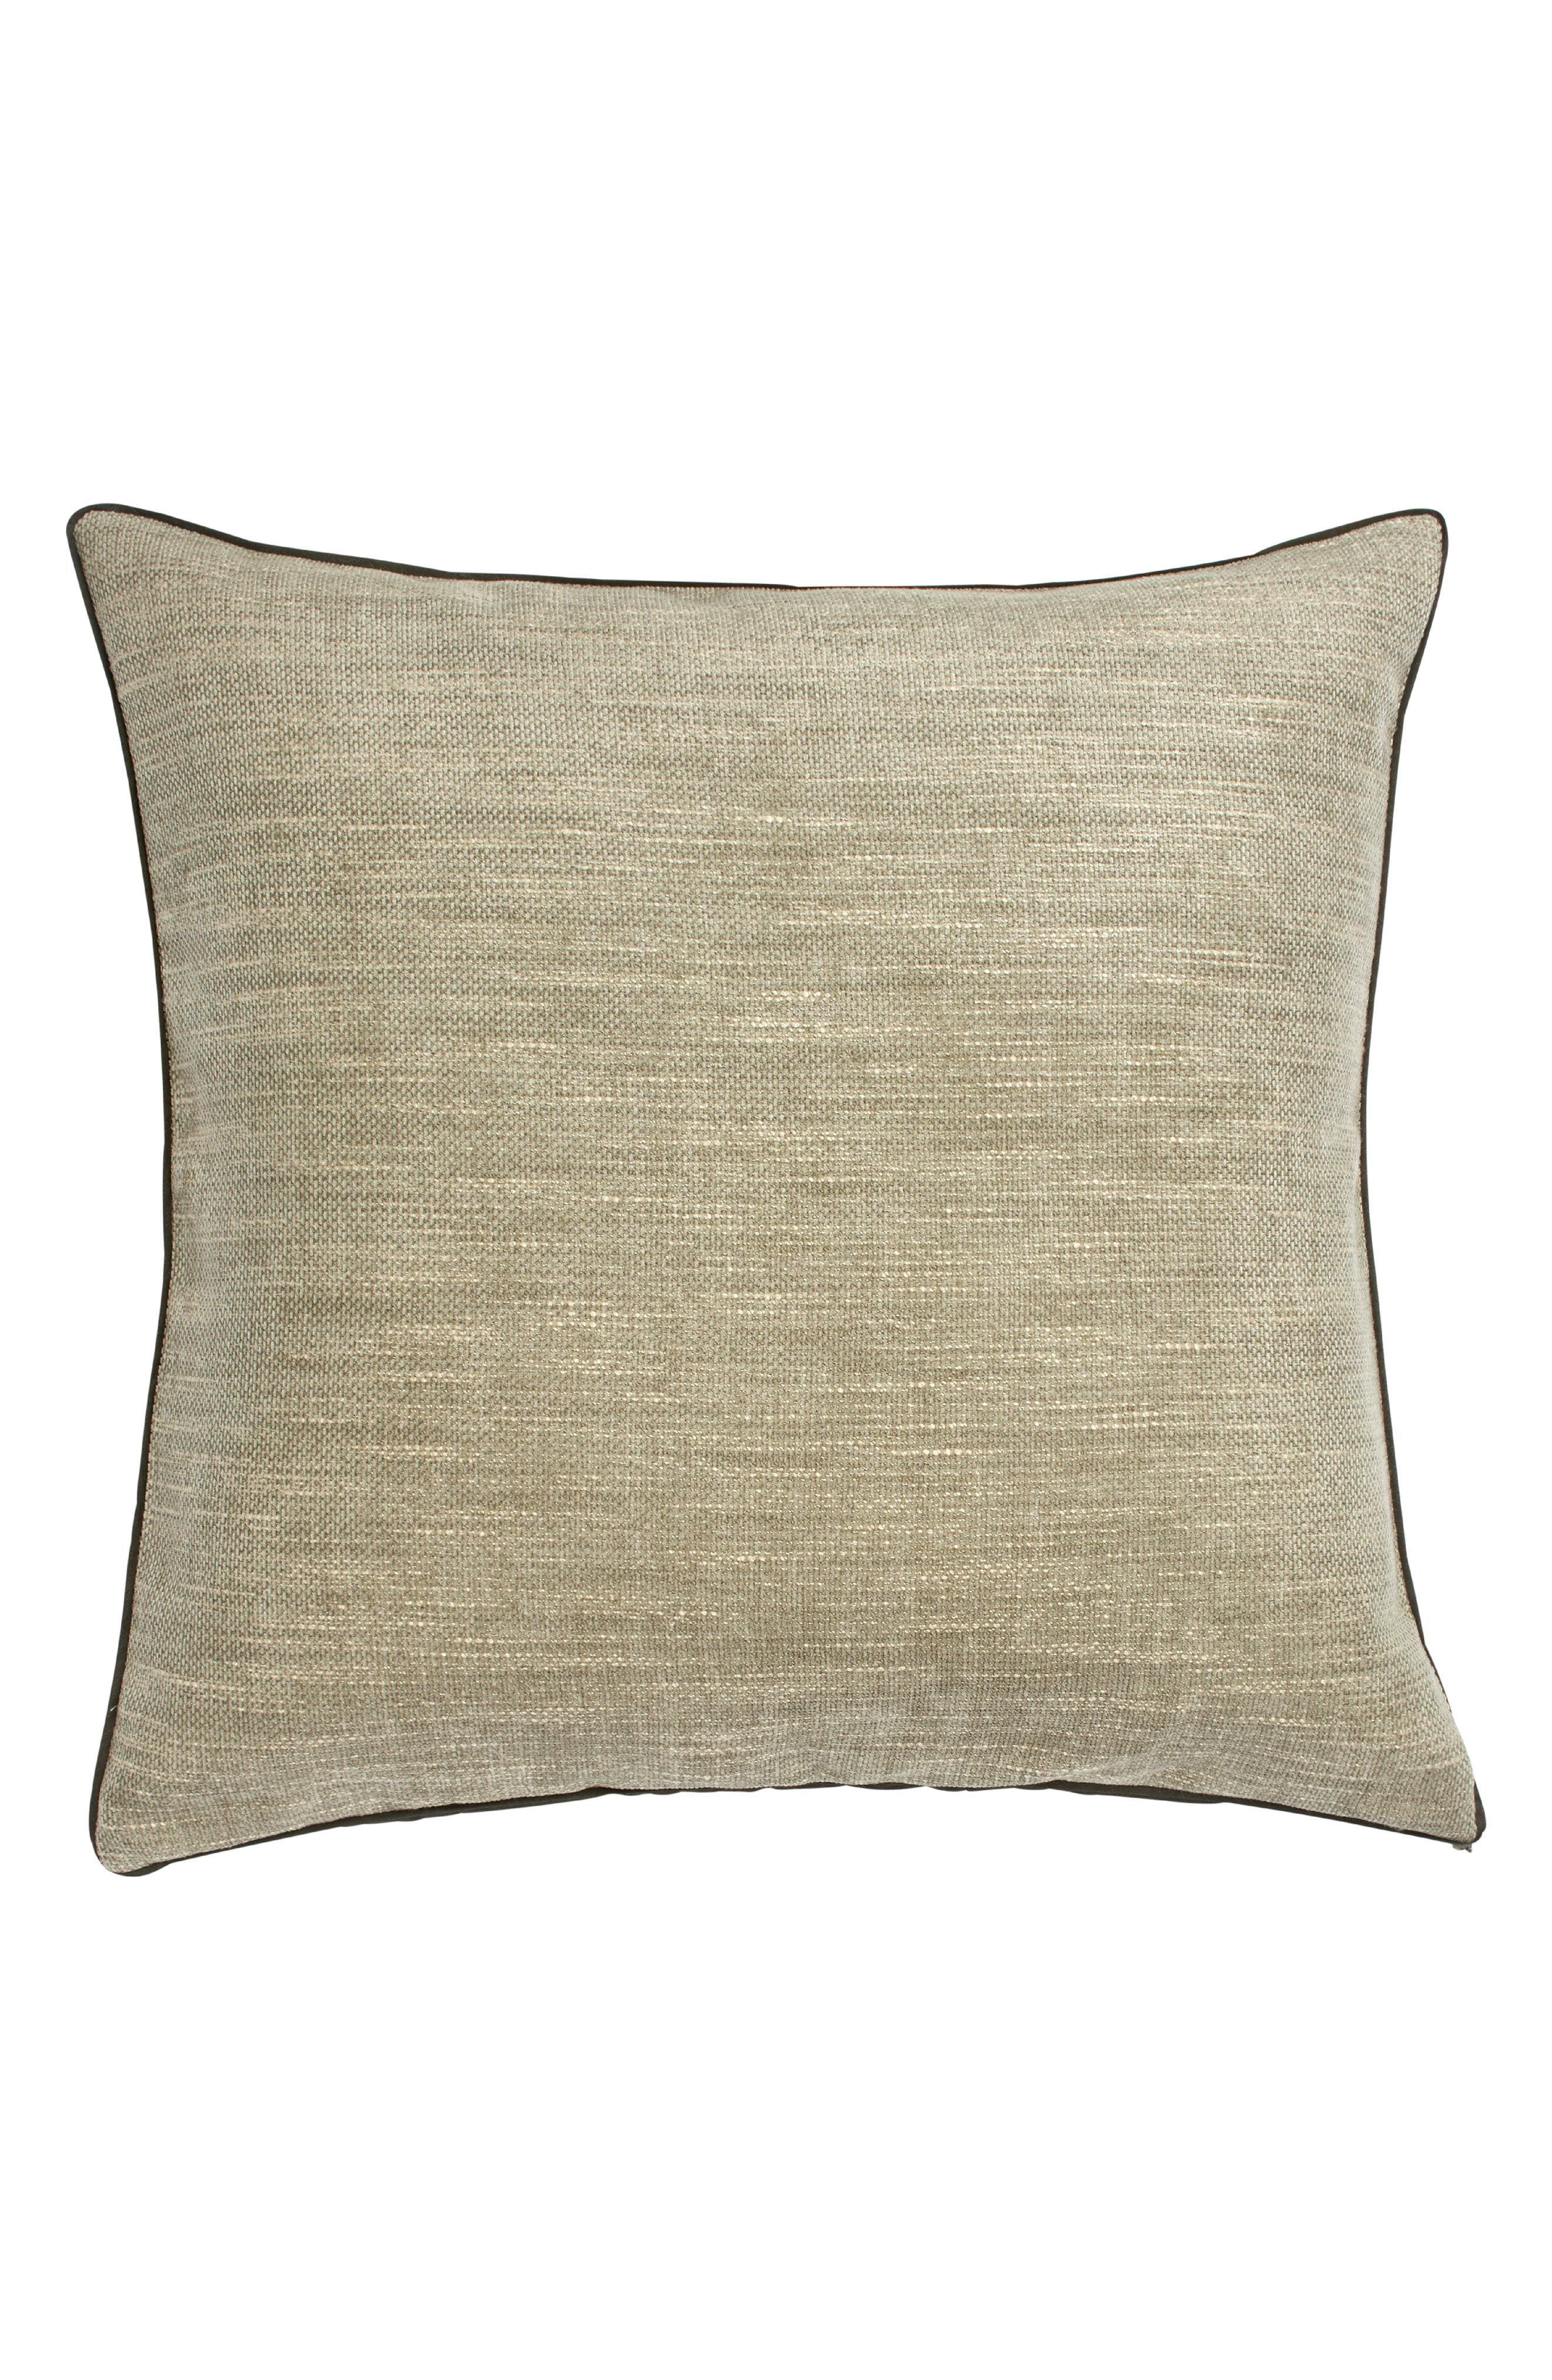 Lotus Accent Pillow,                         Main,                         color, TAUPE